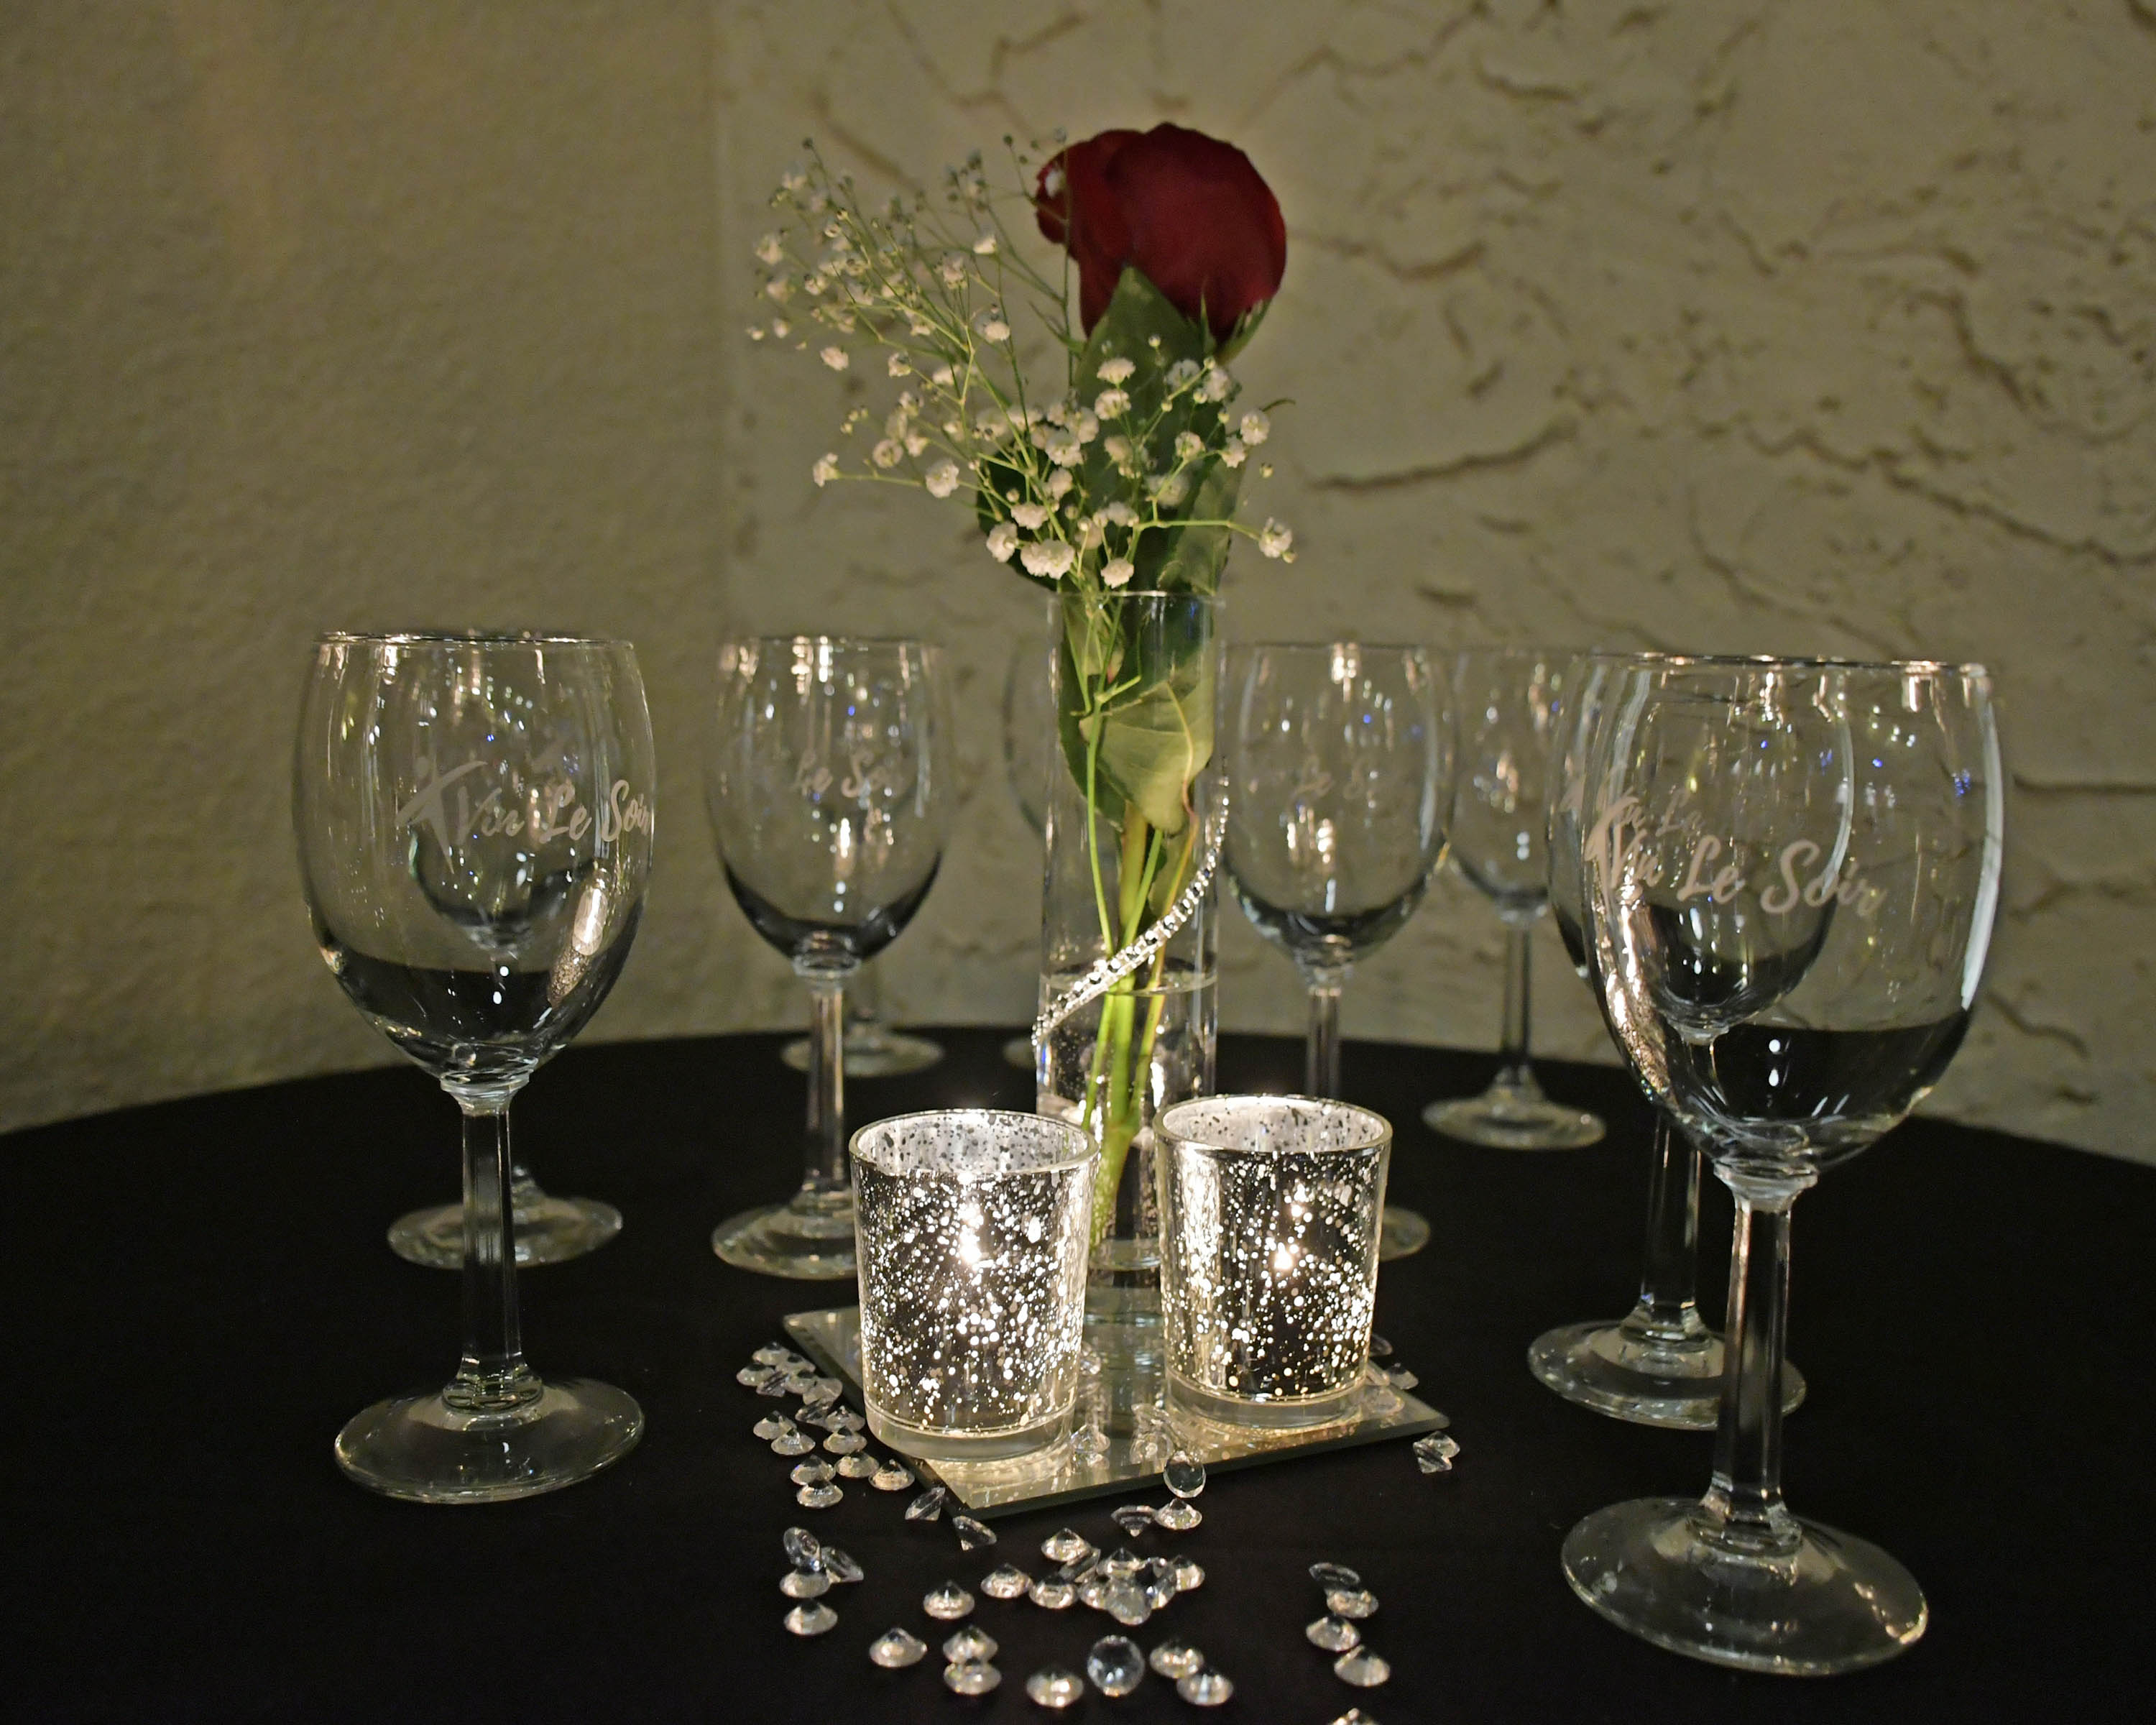 Vin Le Soir to benefit AIM Services, Inc. decor